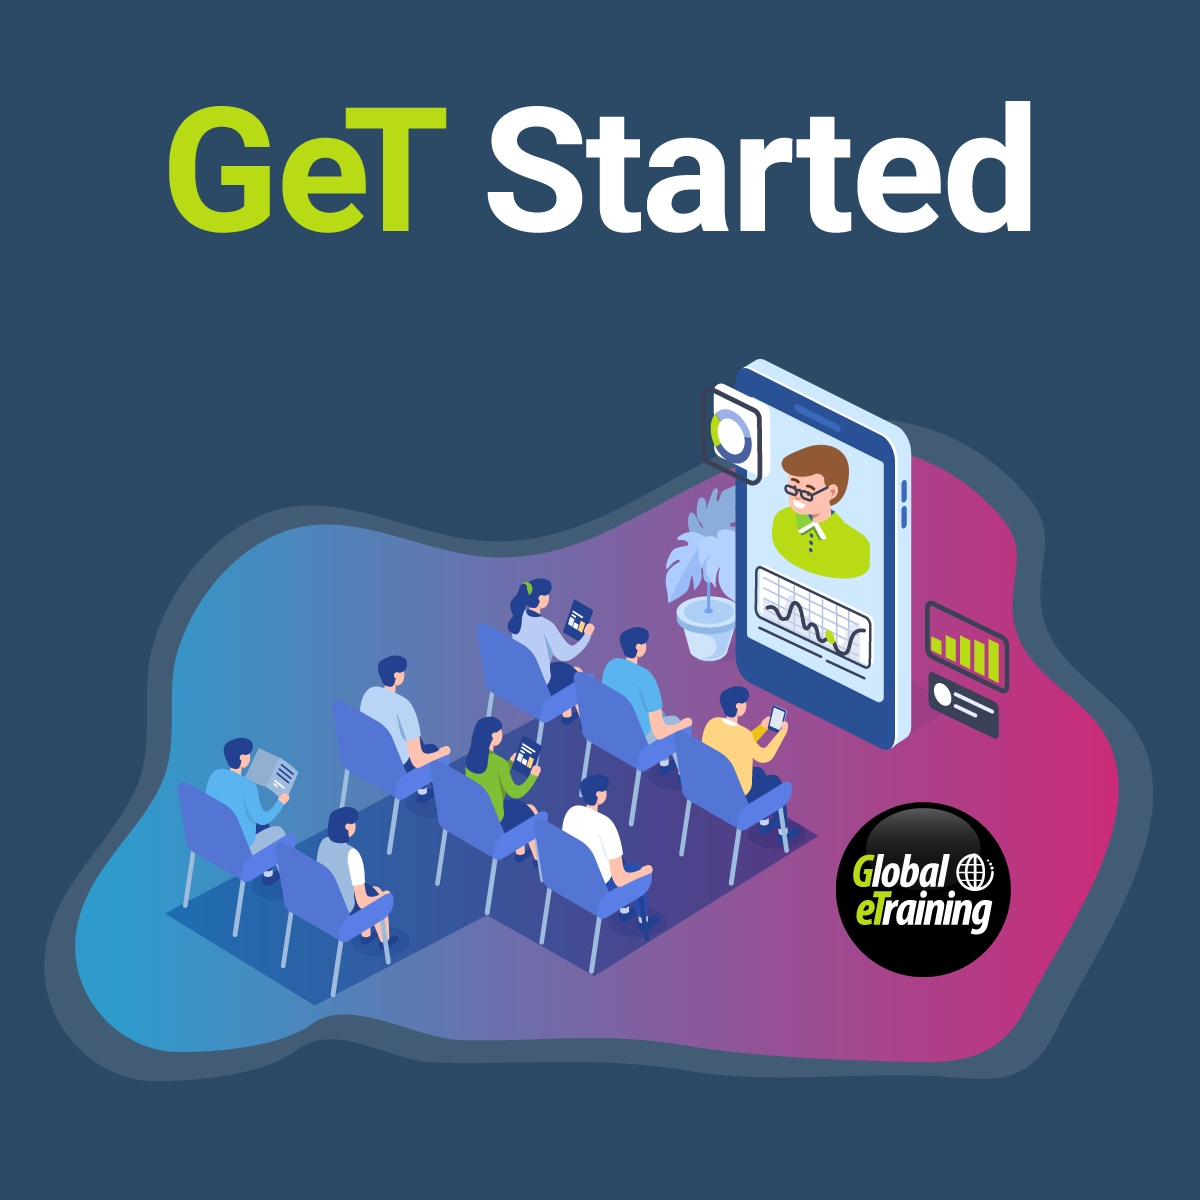 GeT Started: How to Implement Global eTraining and Set Your Team Up For Success